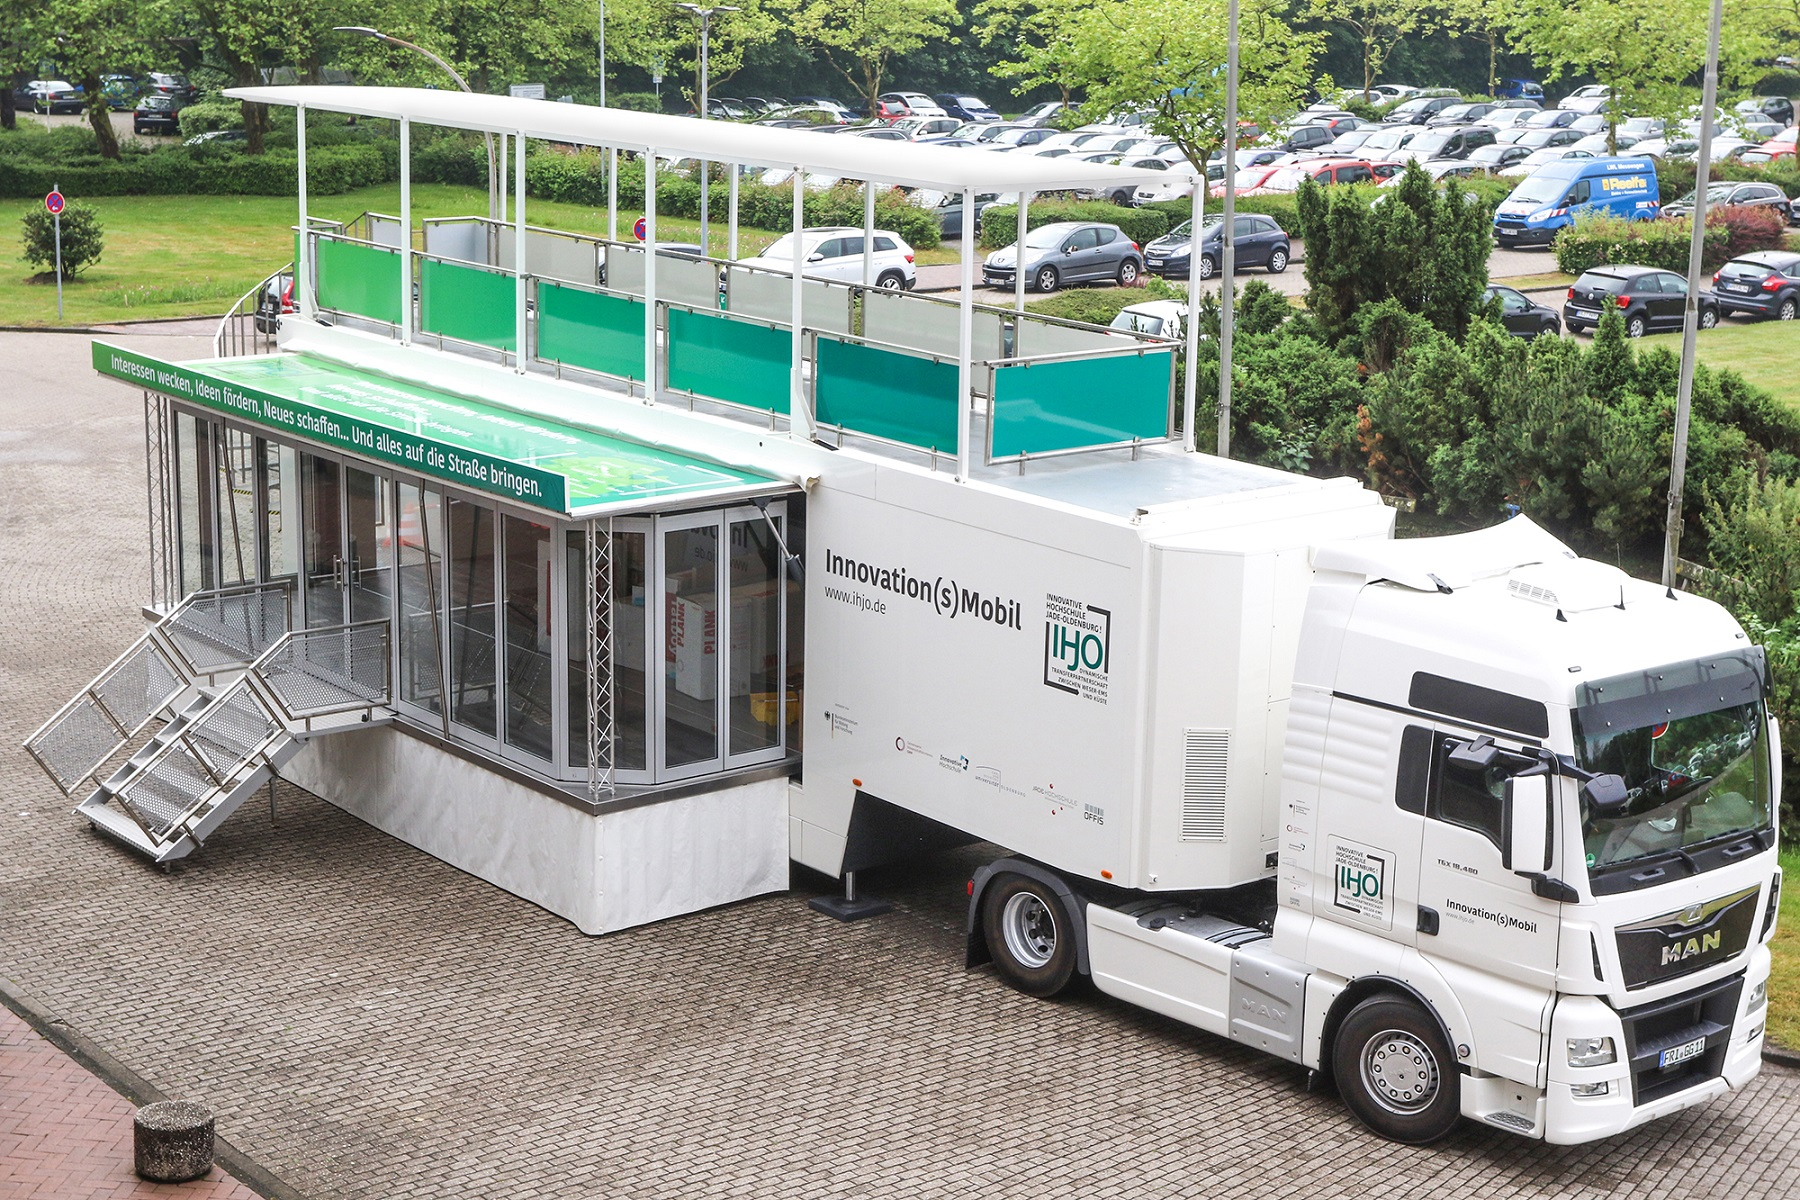 Das Innovation(s)Mobil der Innovativen Hochschule Jade-Oldenburg! Foto: Piet Meyer/Jade HS